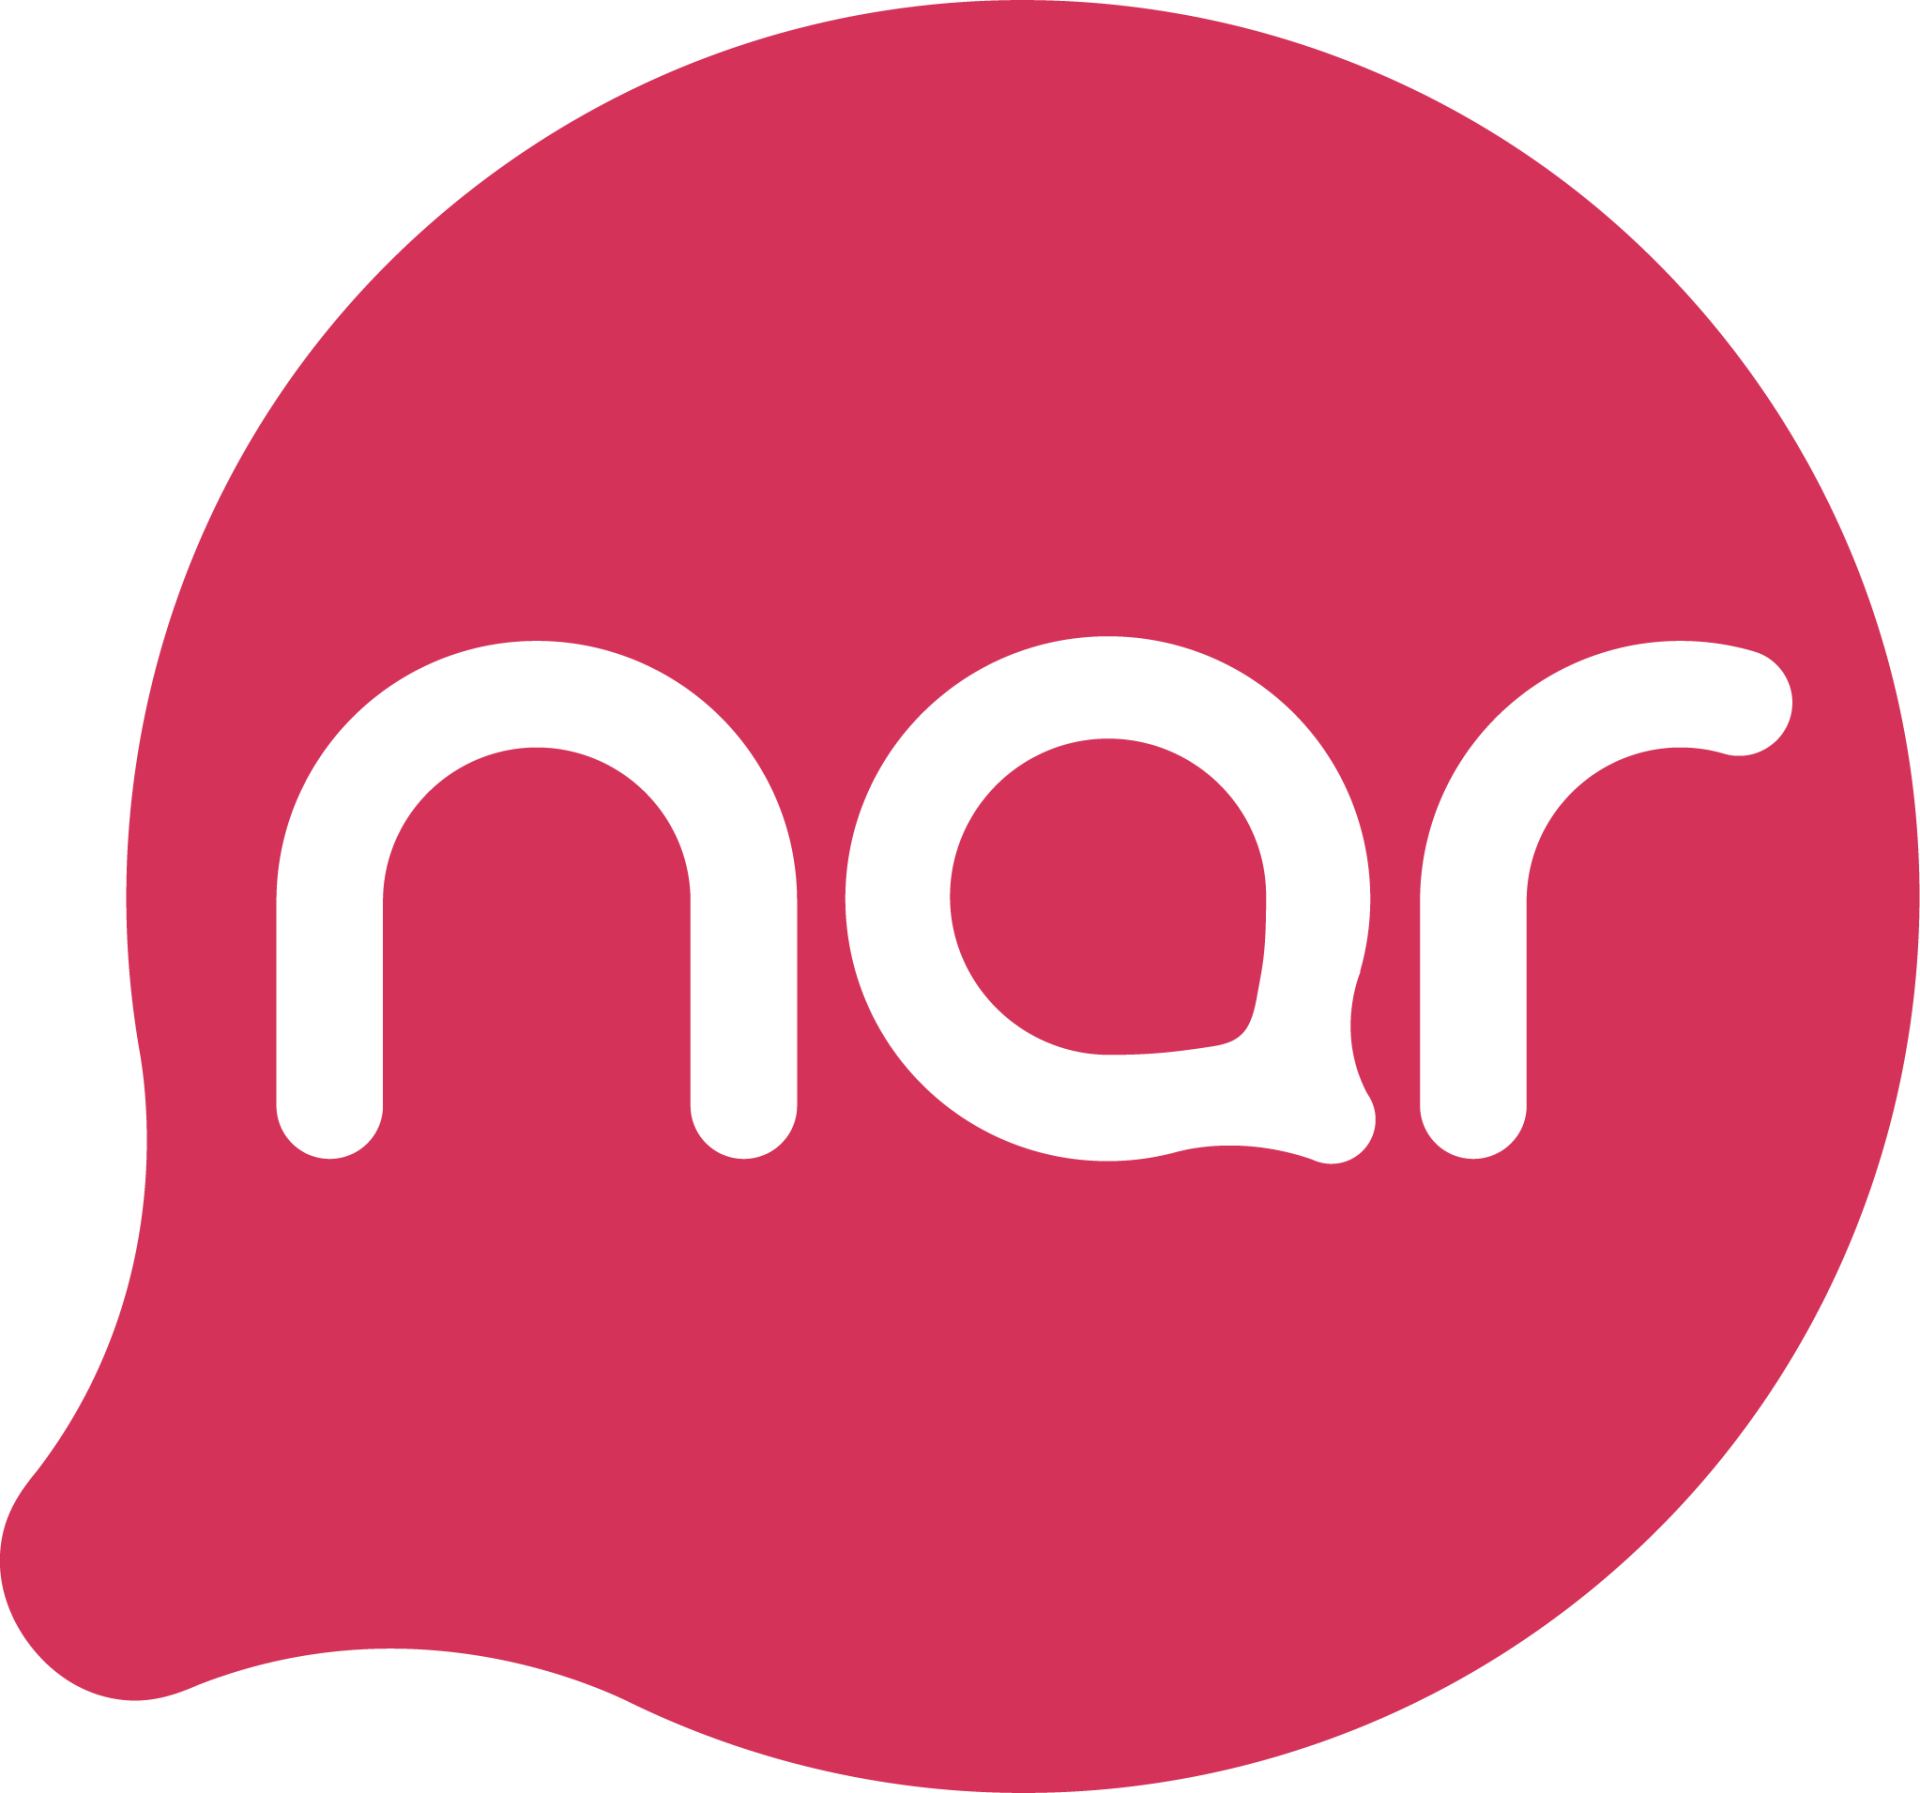 Nar protects customers from unwanted messages and automatic subscription - Gallery Image